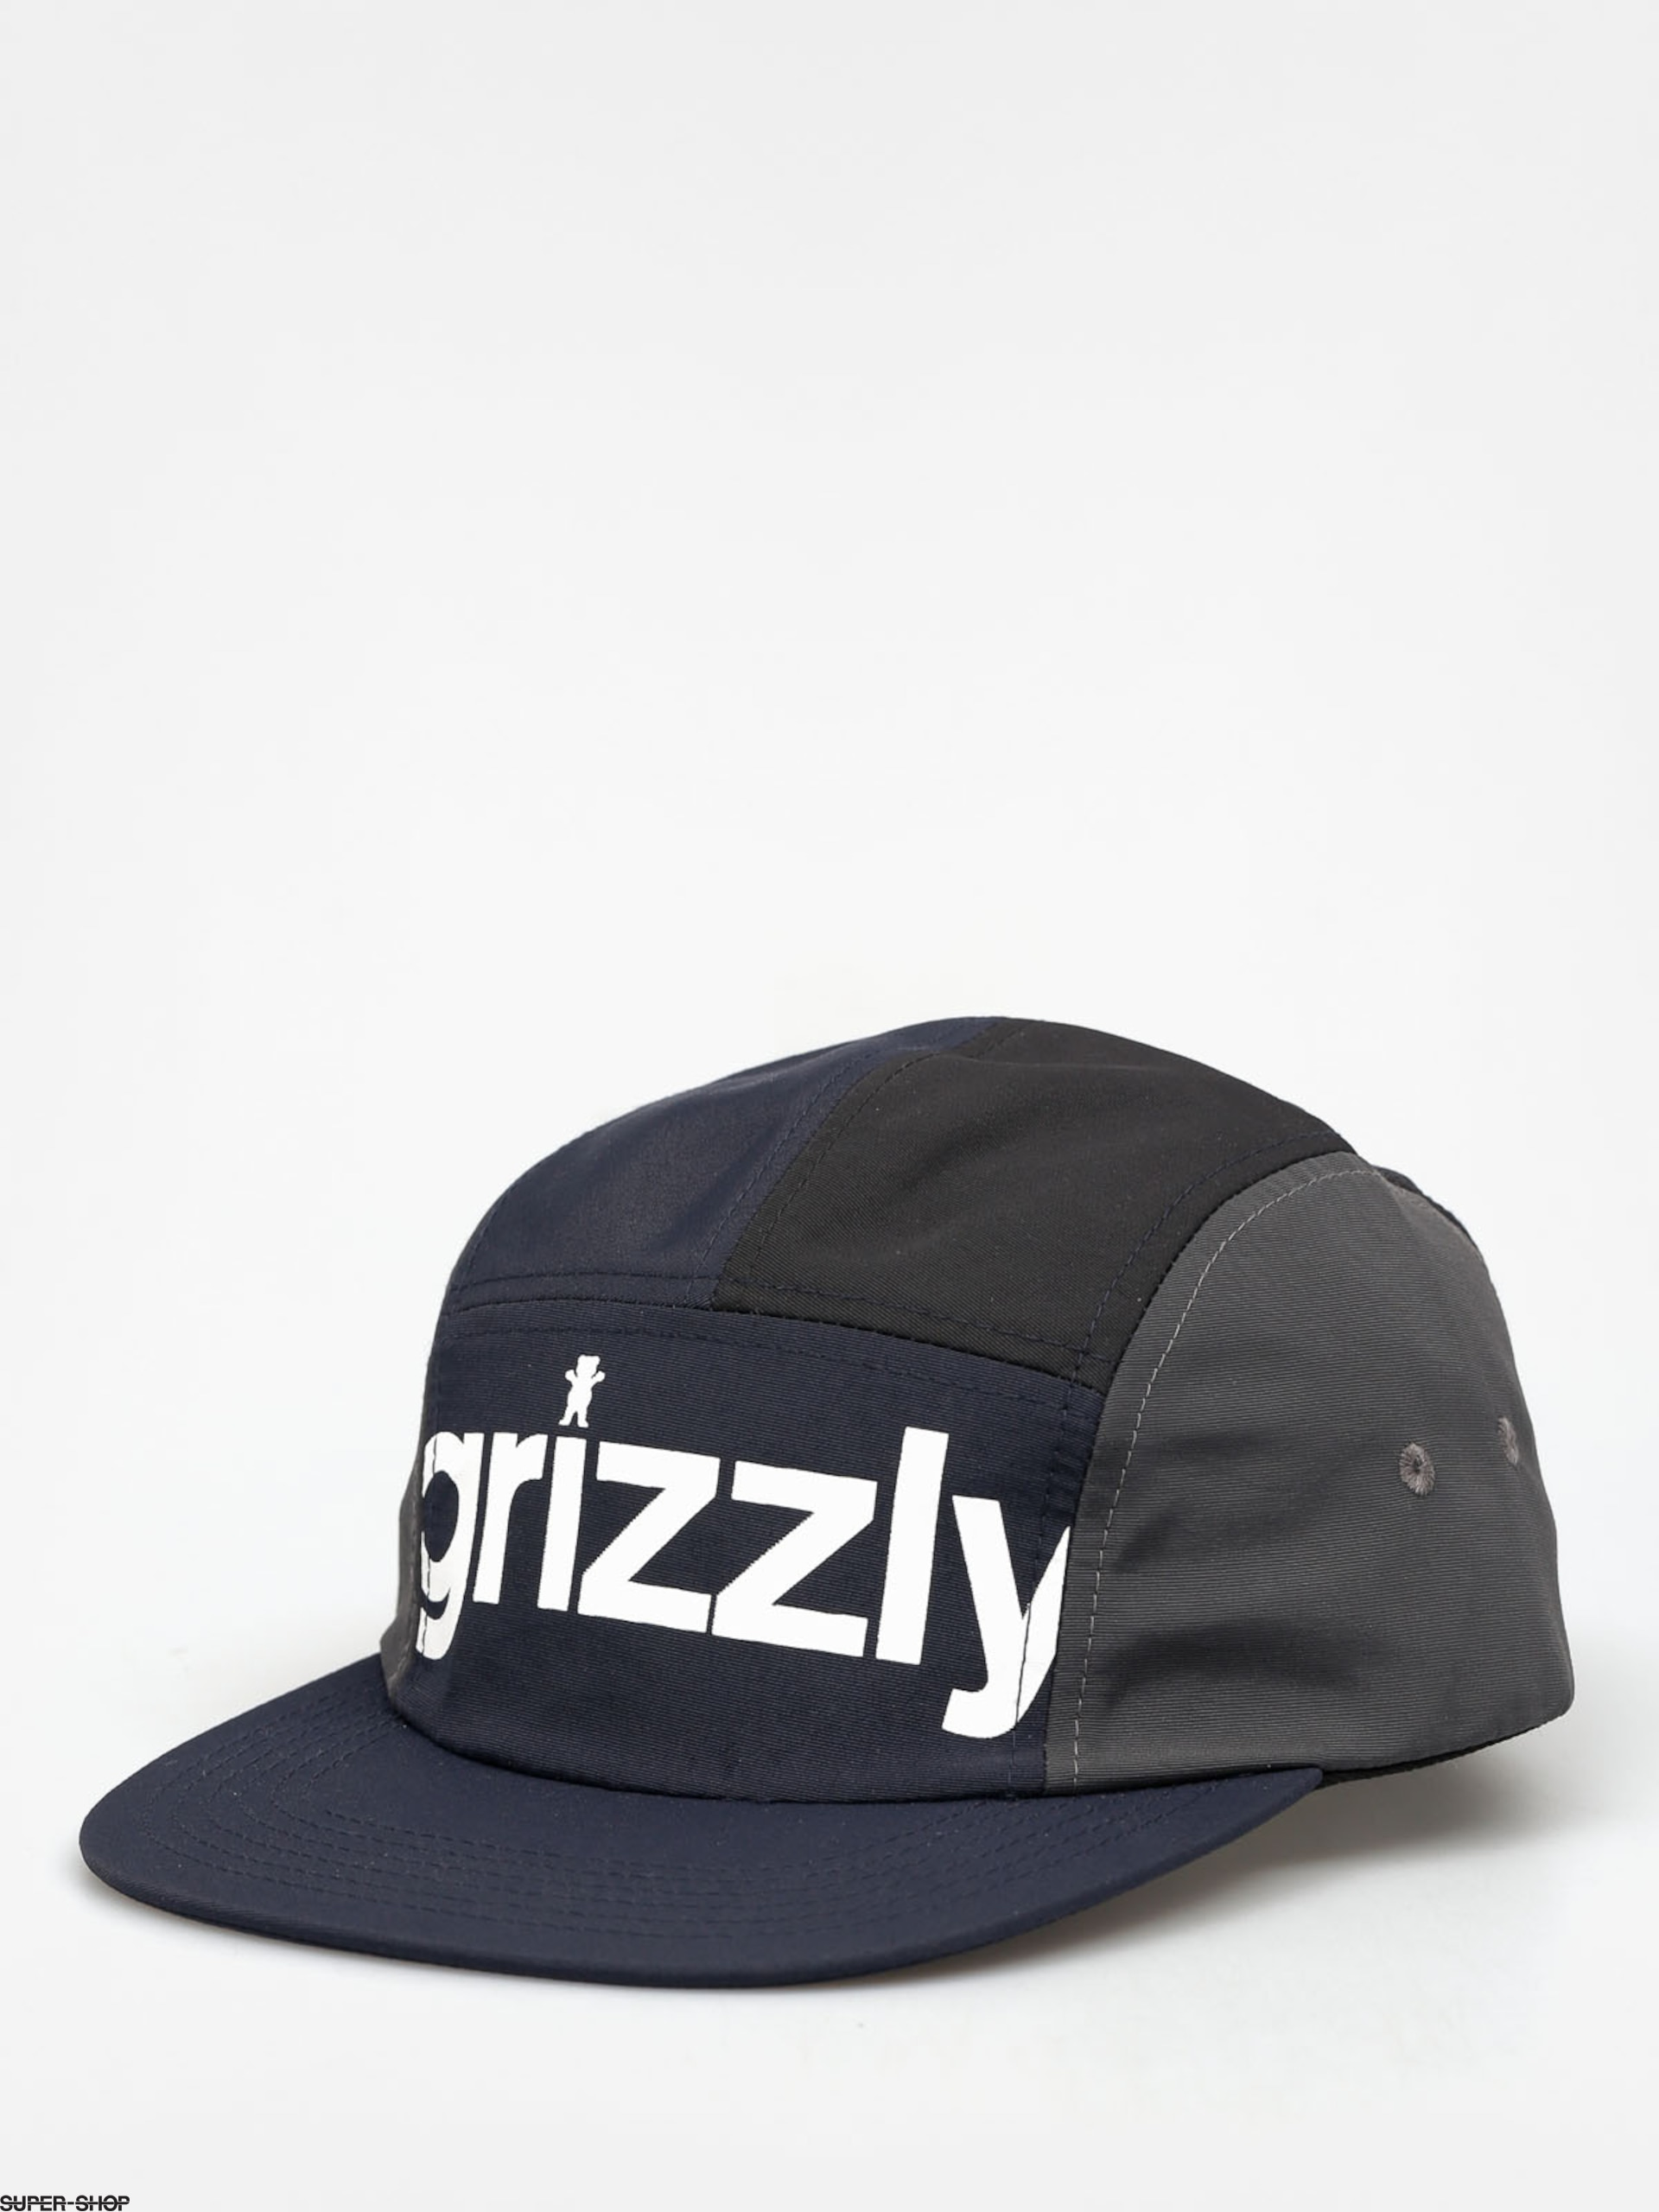 Grizzly Griptape Cap Shades 5 Panel ZD (black)